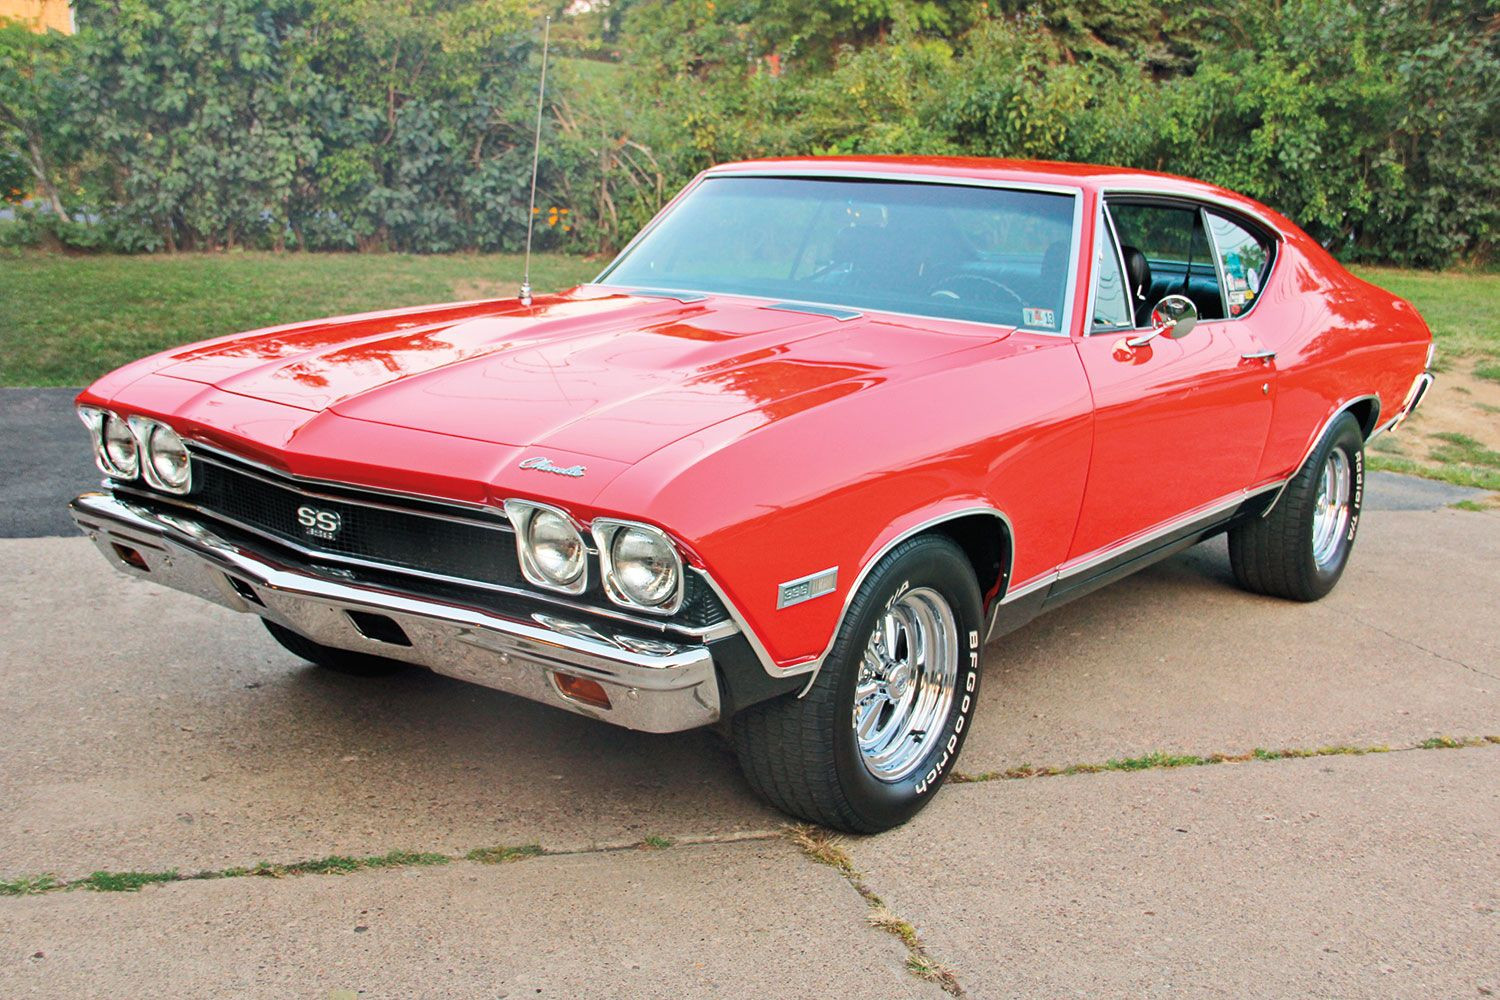 1968 chevrolet chevelle ss 396 maintenance restoration of old vintage vehicles the material